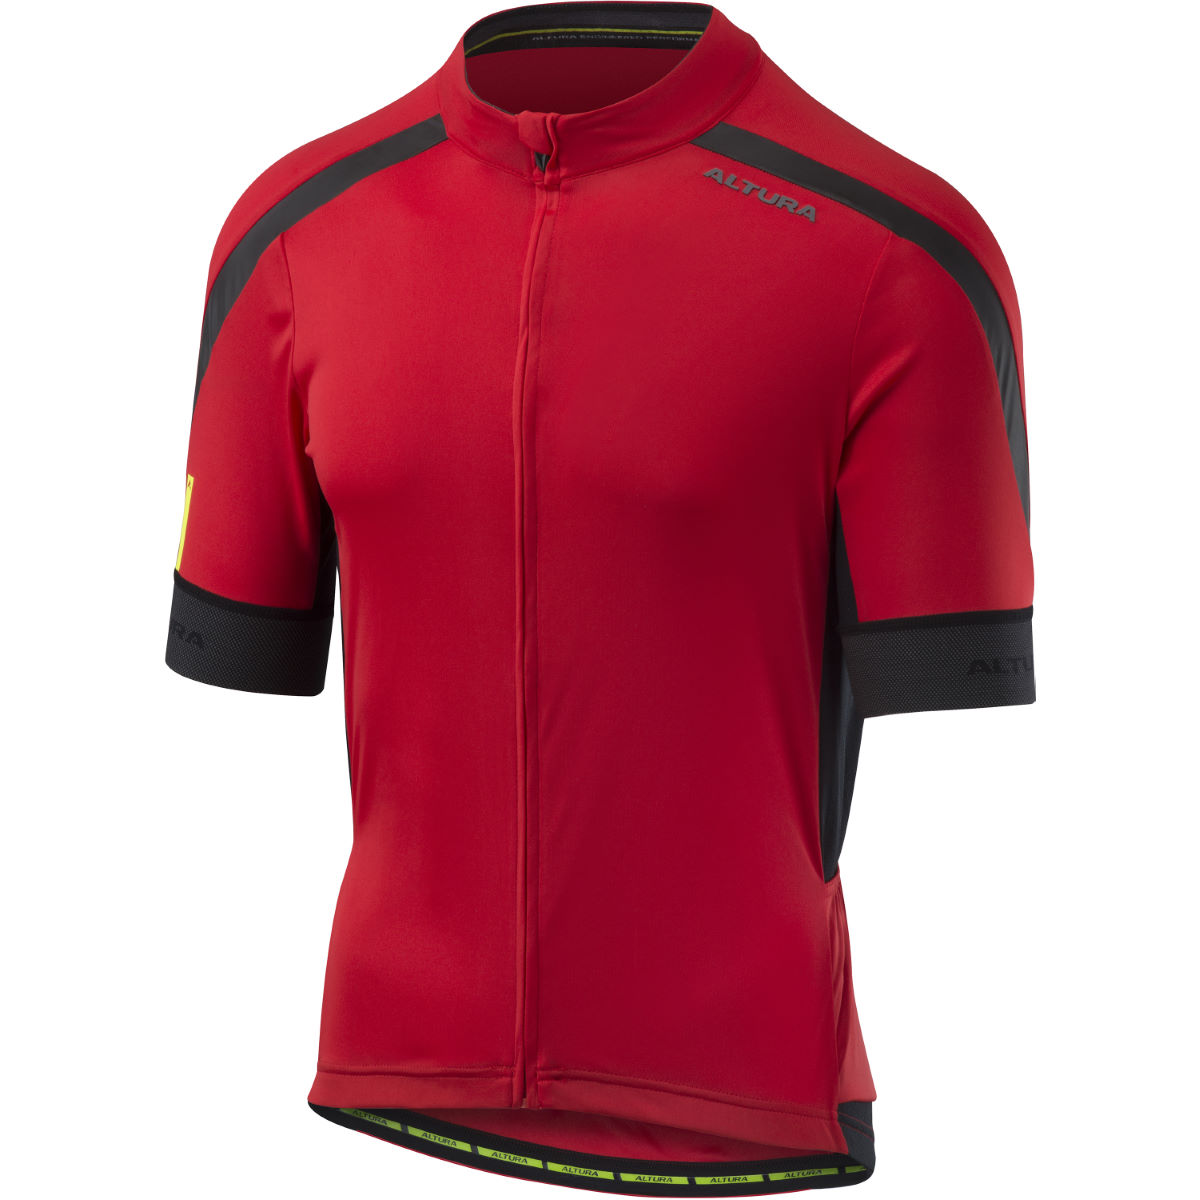 Maillot Altura NV 2 (manches courtes) - XXL Team Red Maillots